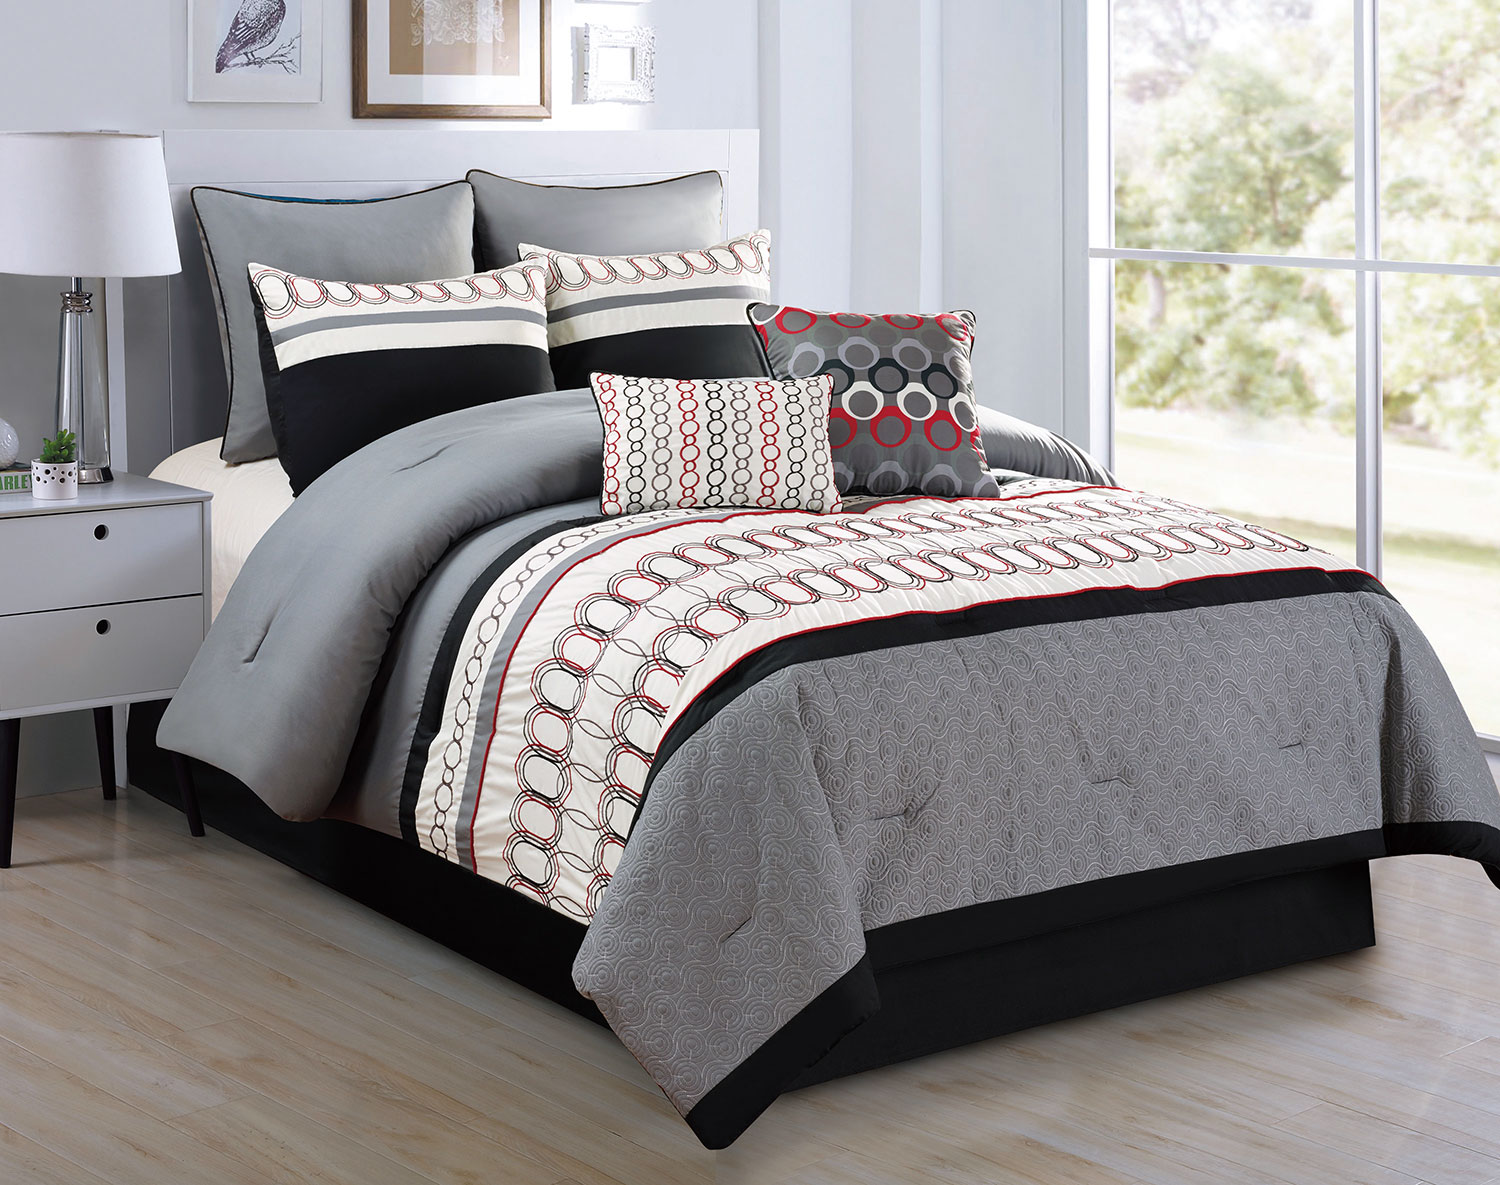 Mattresses and Bedding - Clement 8-Piece King Comforter Set